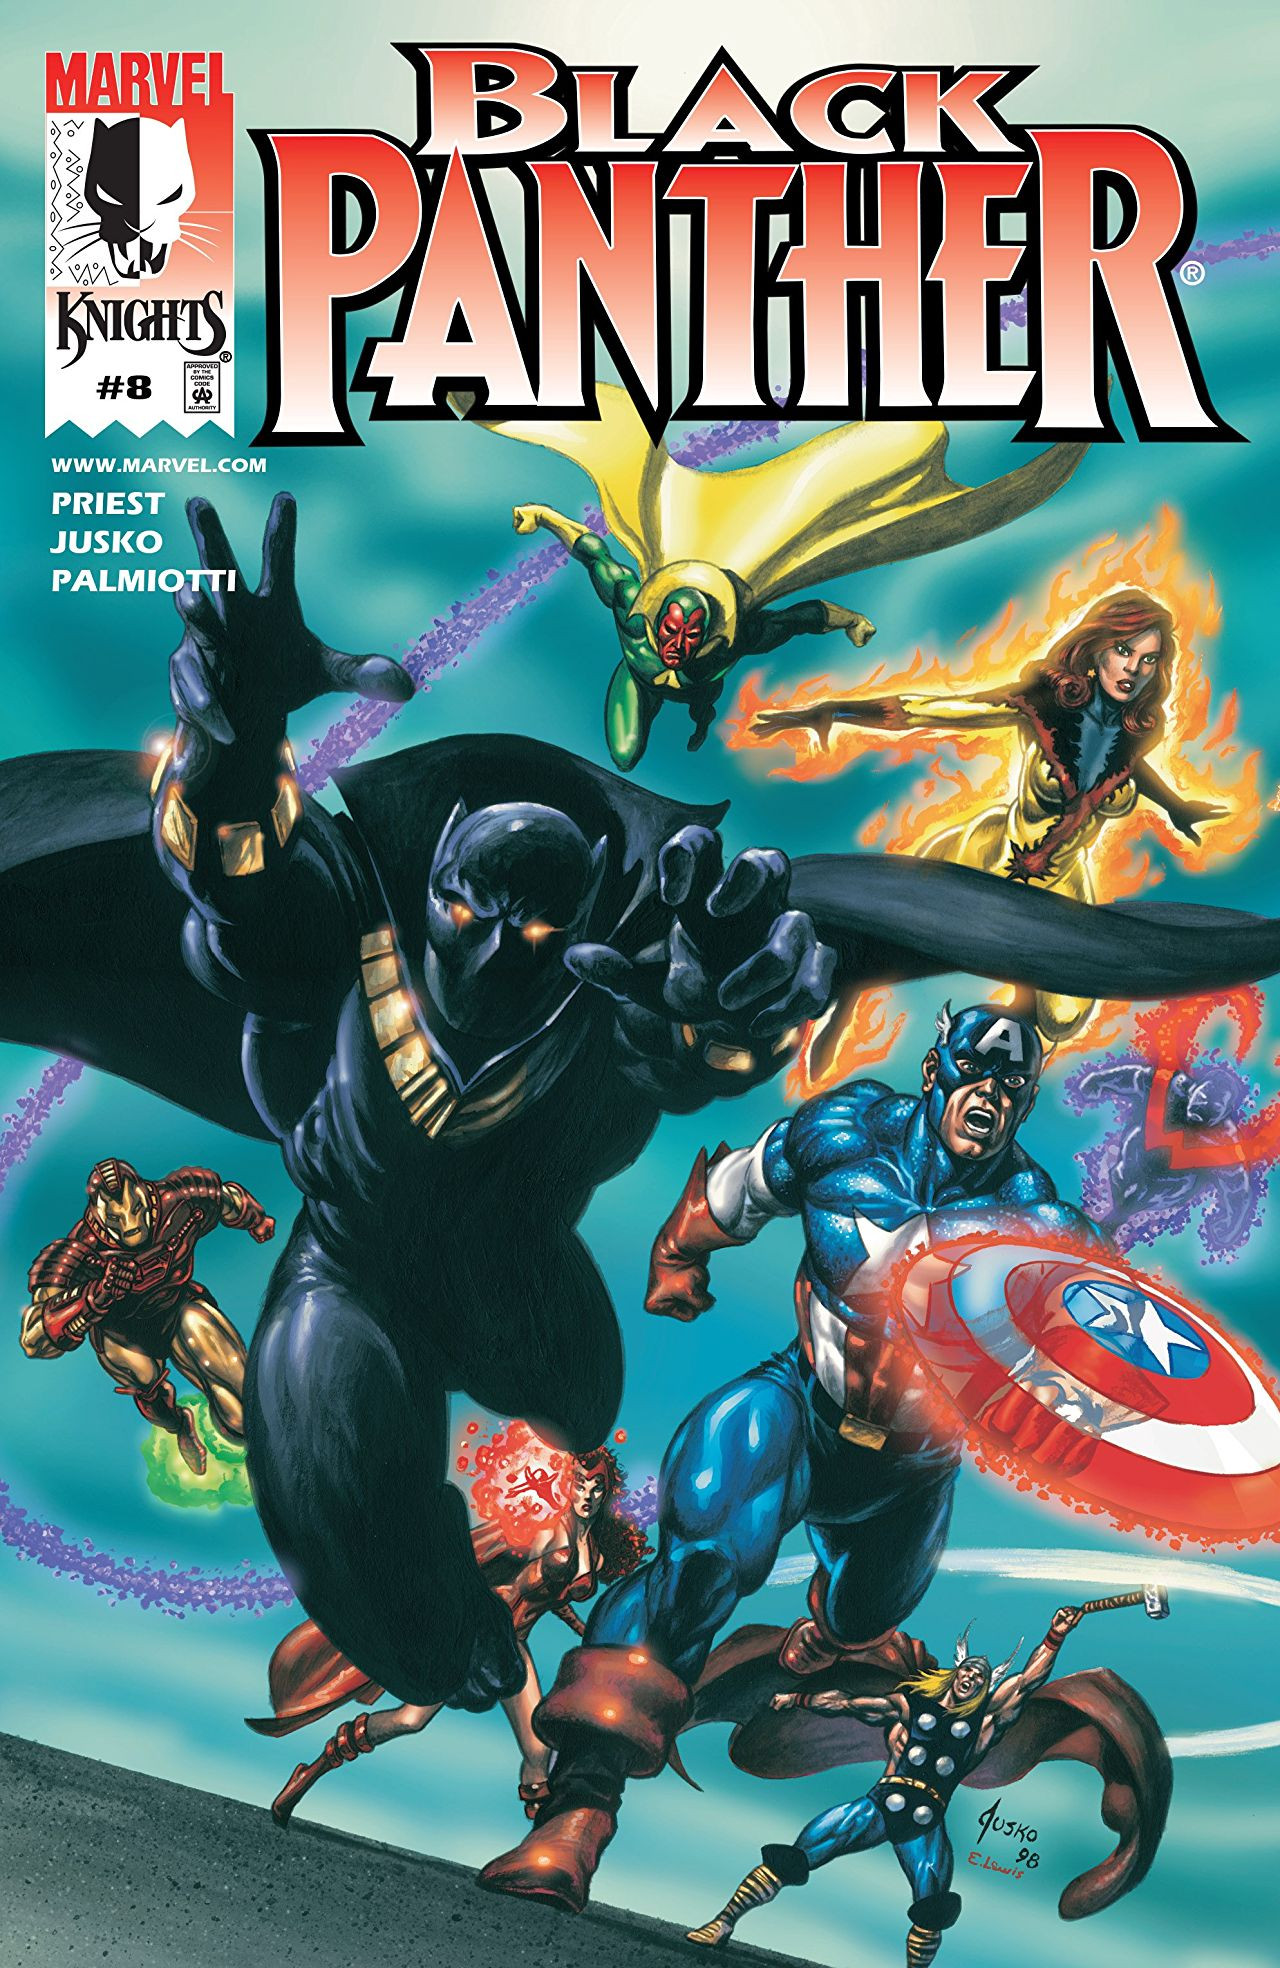 panther chat sites By joshua yehl with black panther hitting theaters, ign talked to director ryan  coogler about the infinity stones, those powerful gems that big.